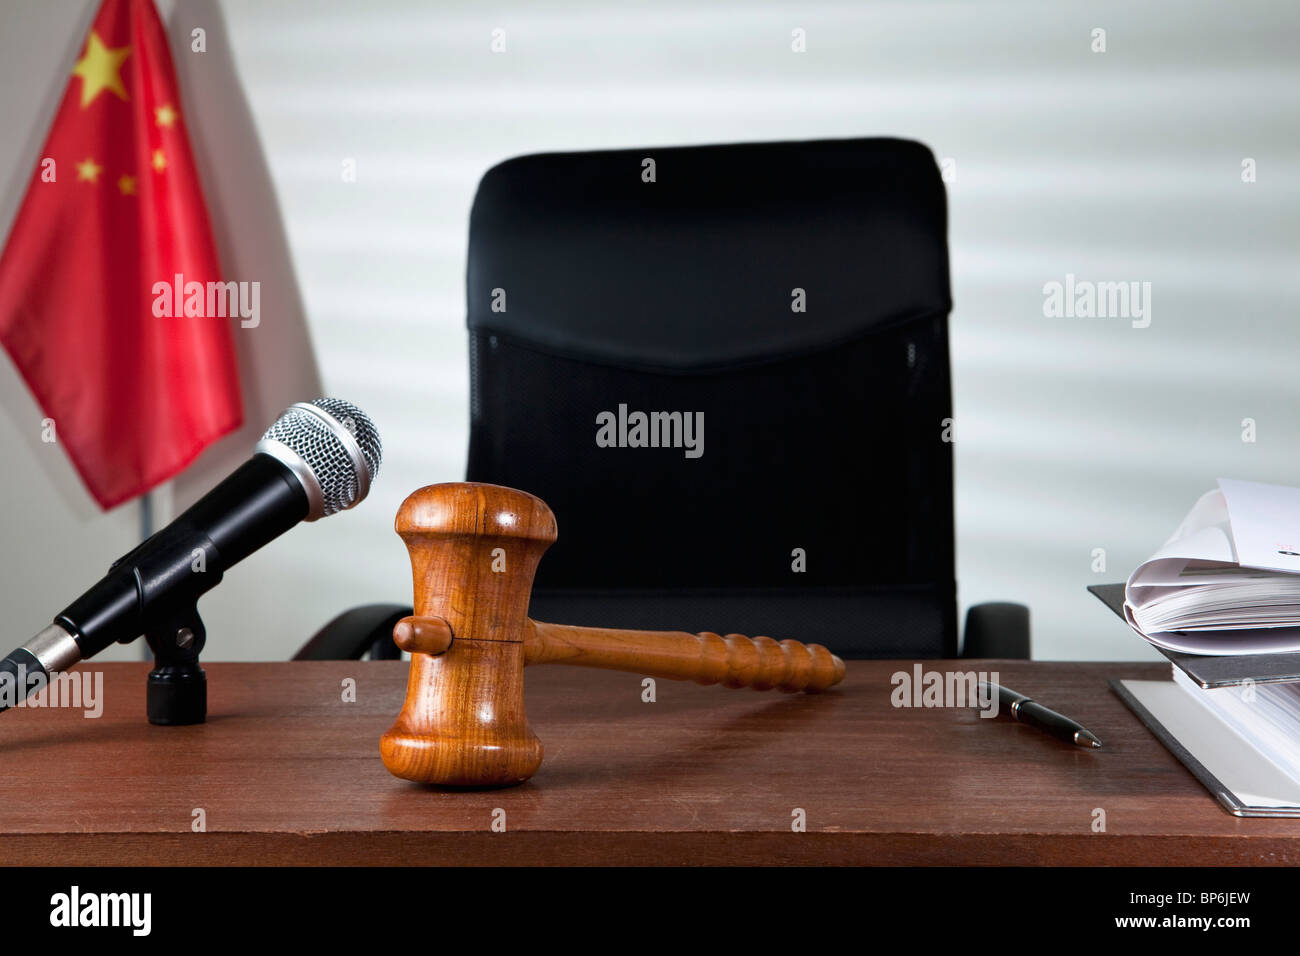 A gavel on a judge's desk in an empty courtroom - Stock Image